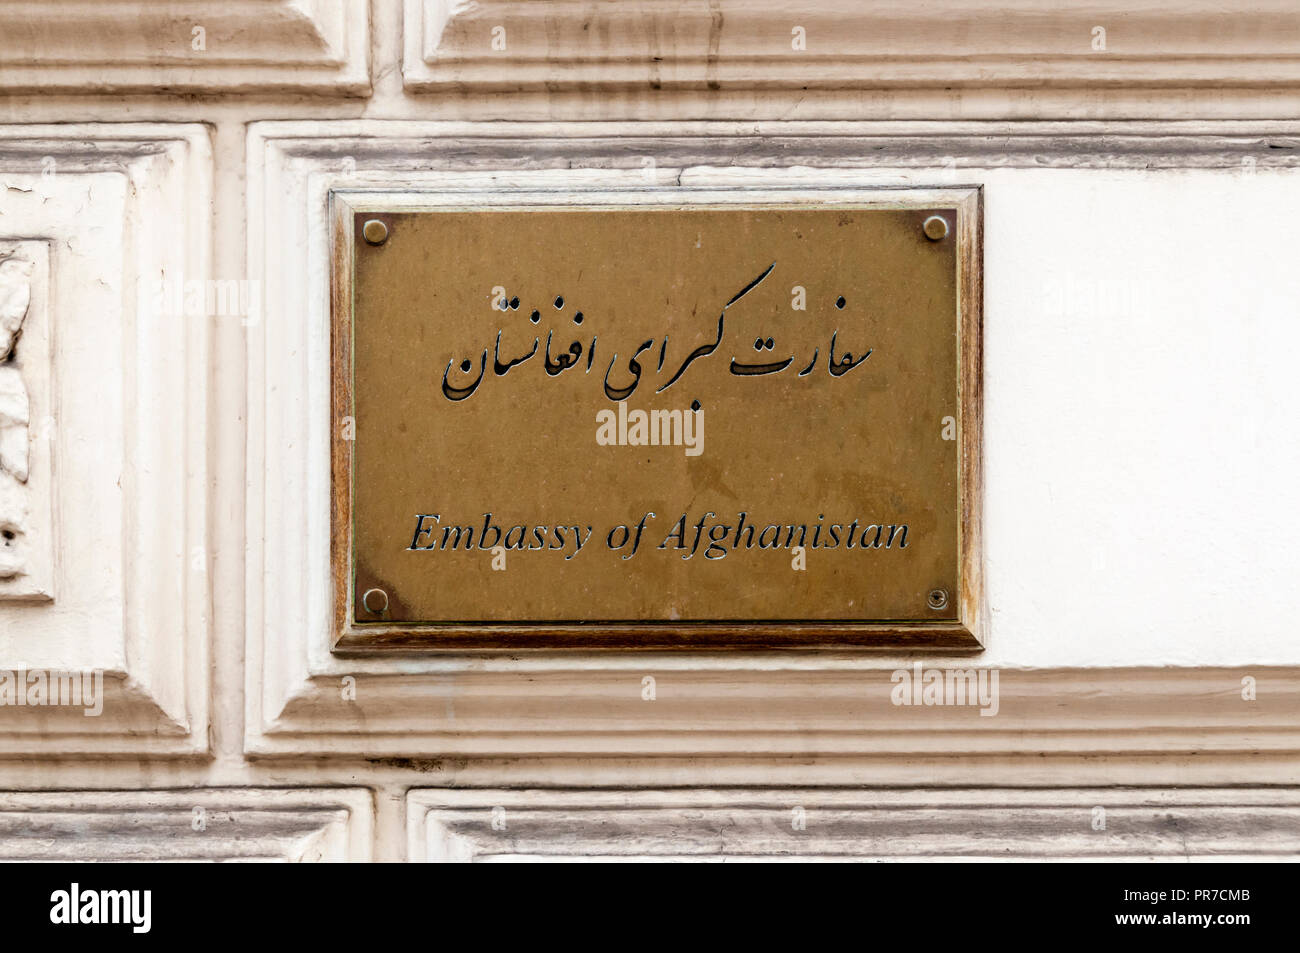 Brass plate on entrance to Embassy of Afghanistan in South Kensington, London - Stock Image